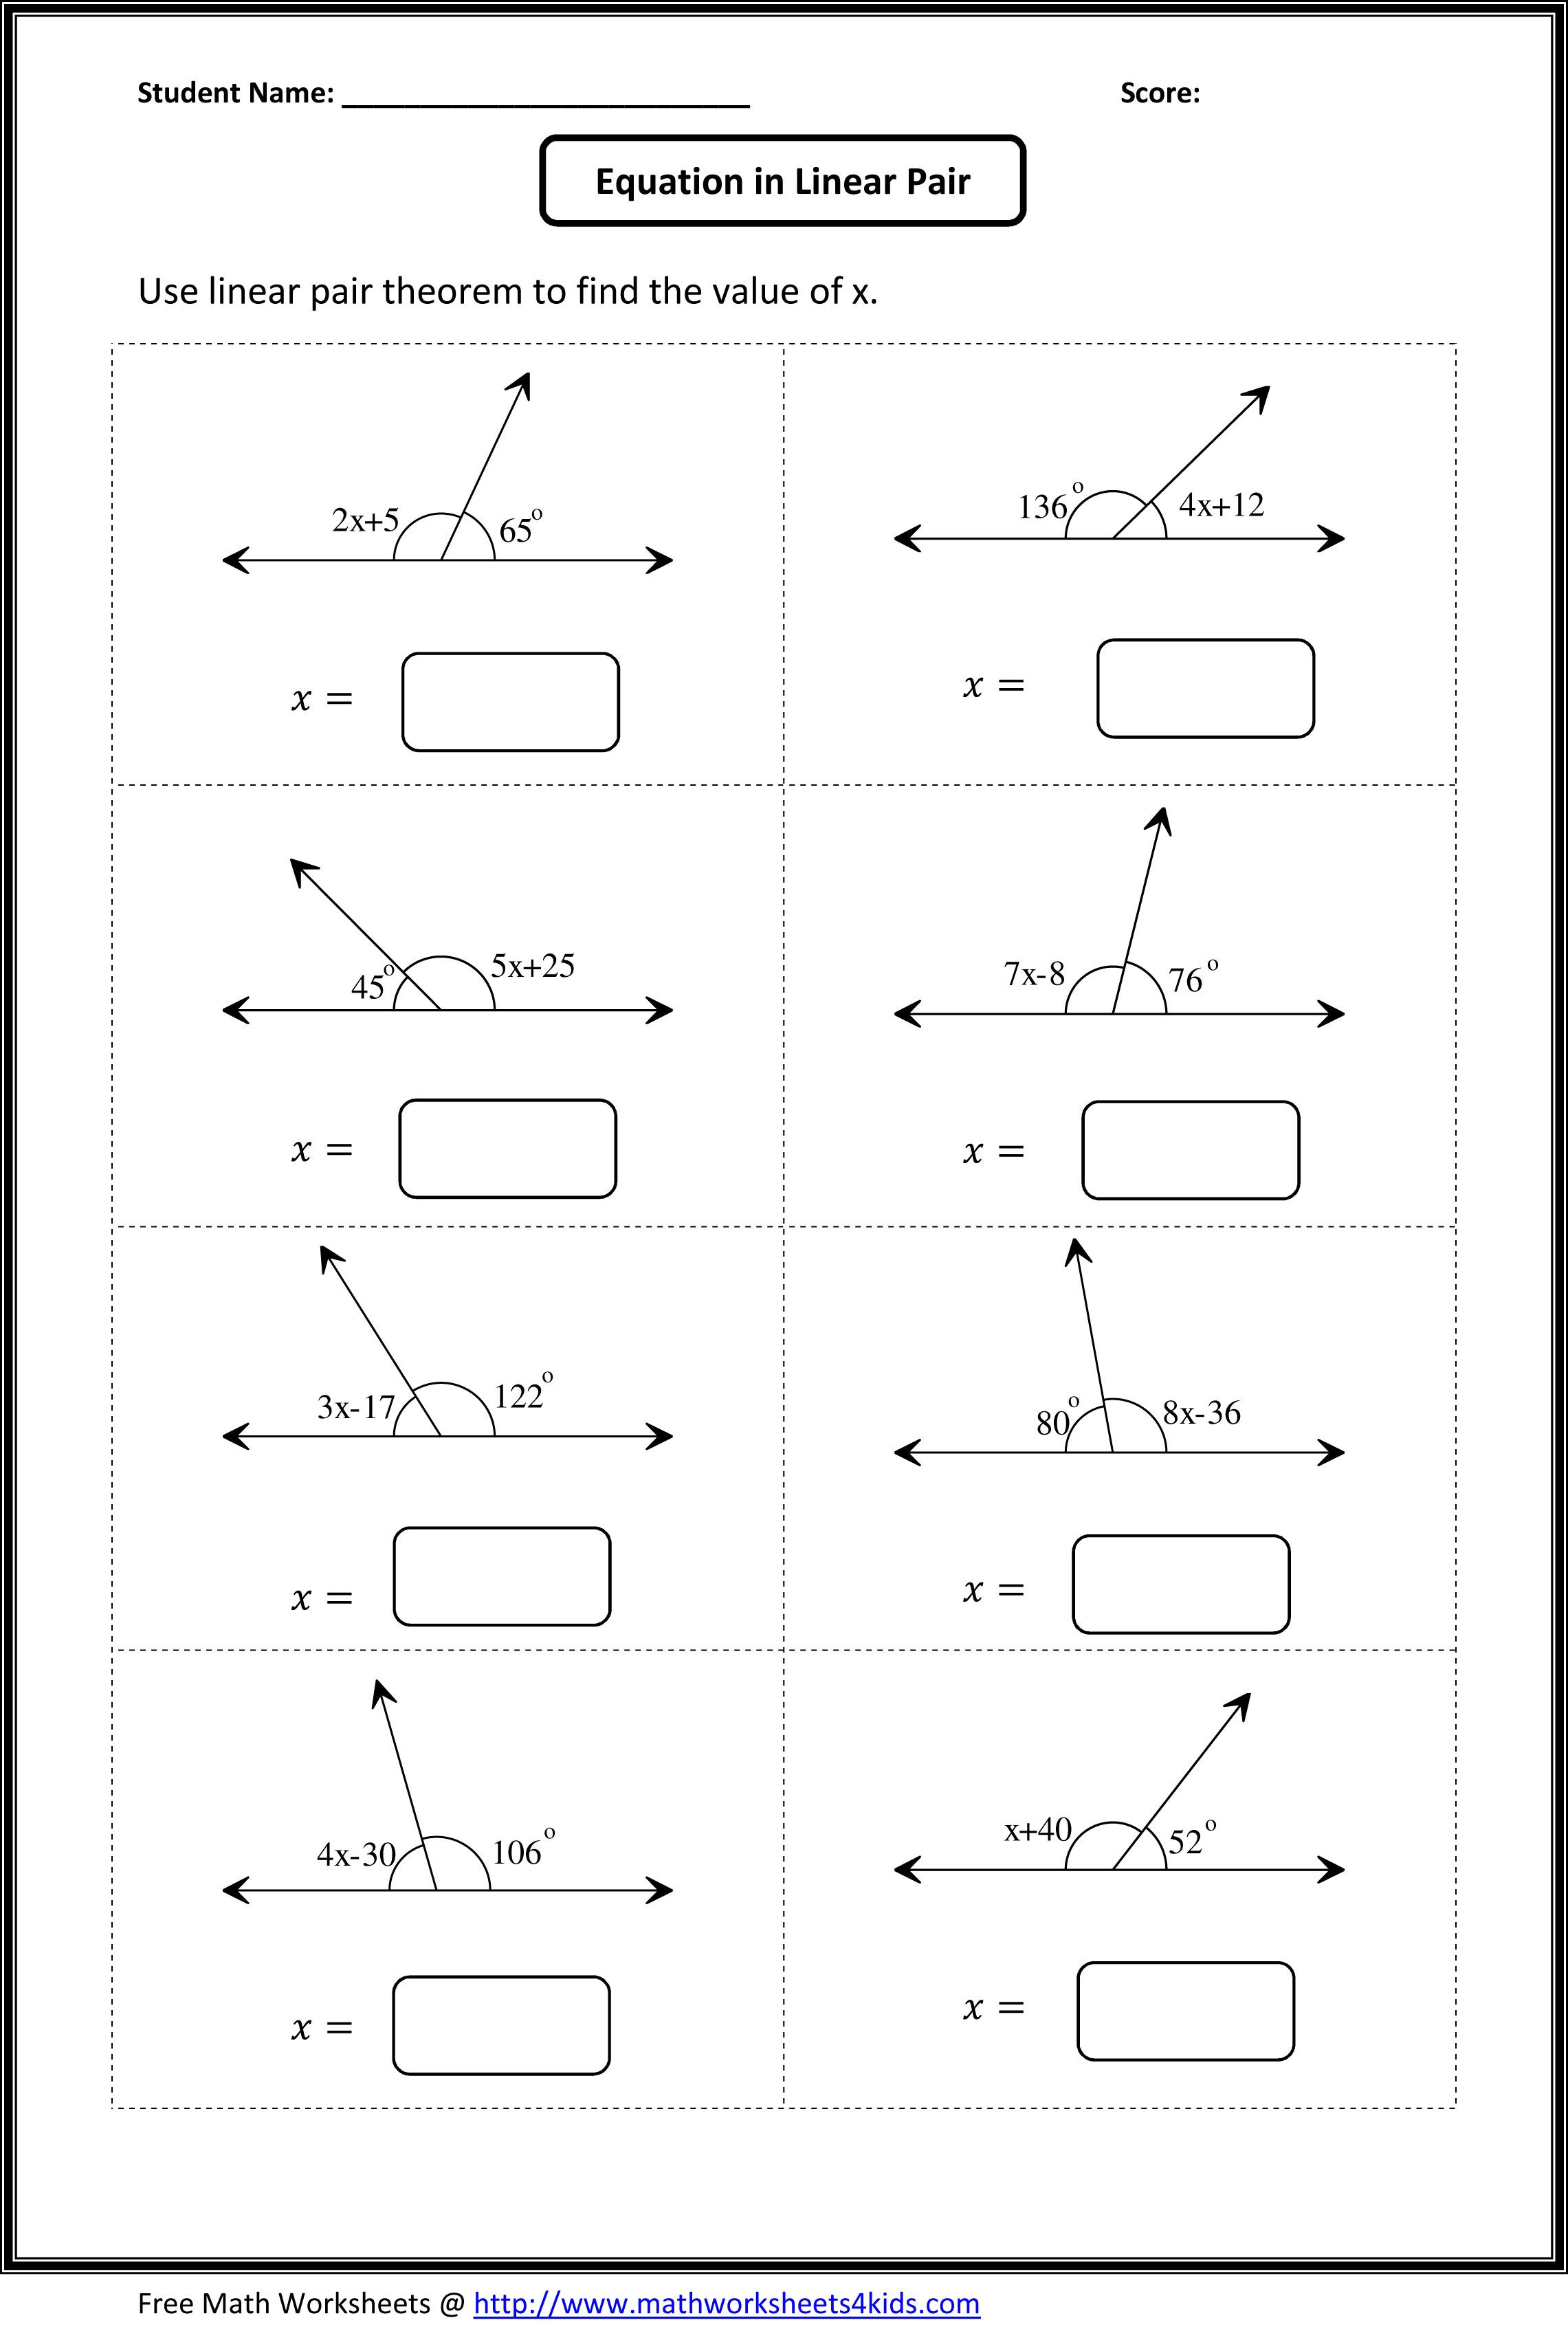 25 Angle Worksheets Are Recently Added